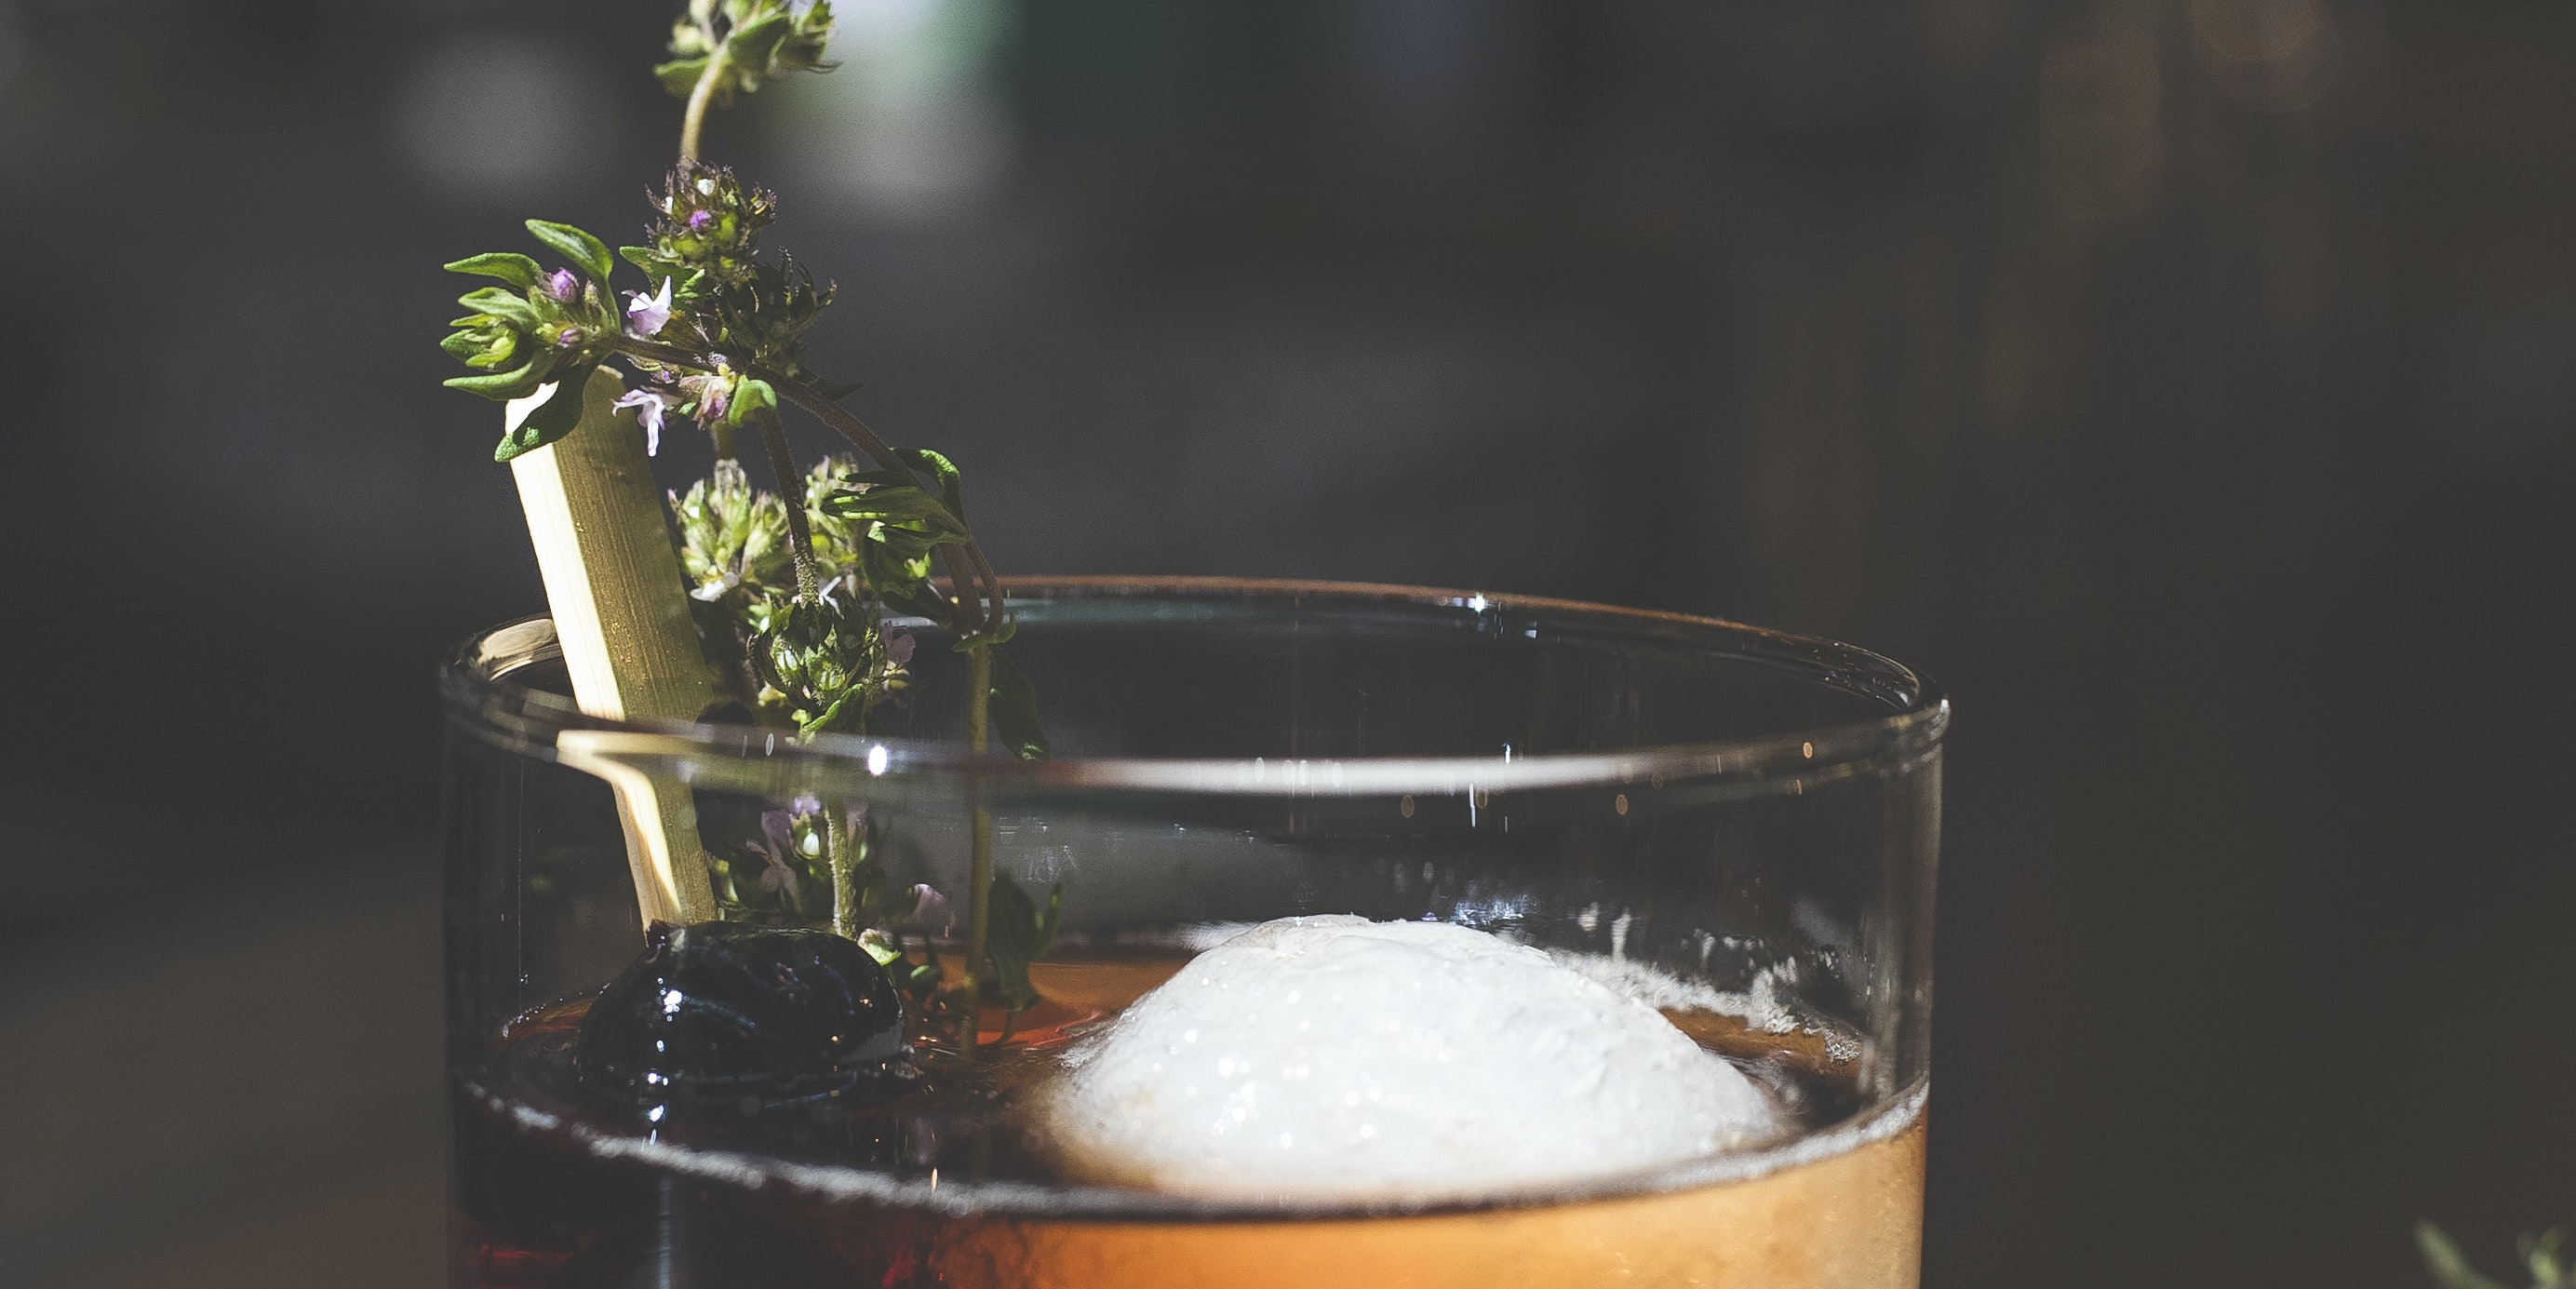 Japan's New 'Wood Alcohol' Made from Trees Makes You Drunk, Not Blind